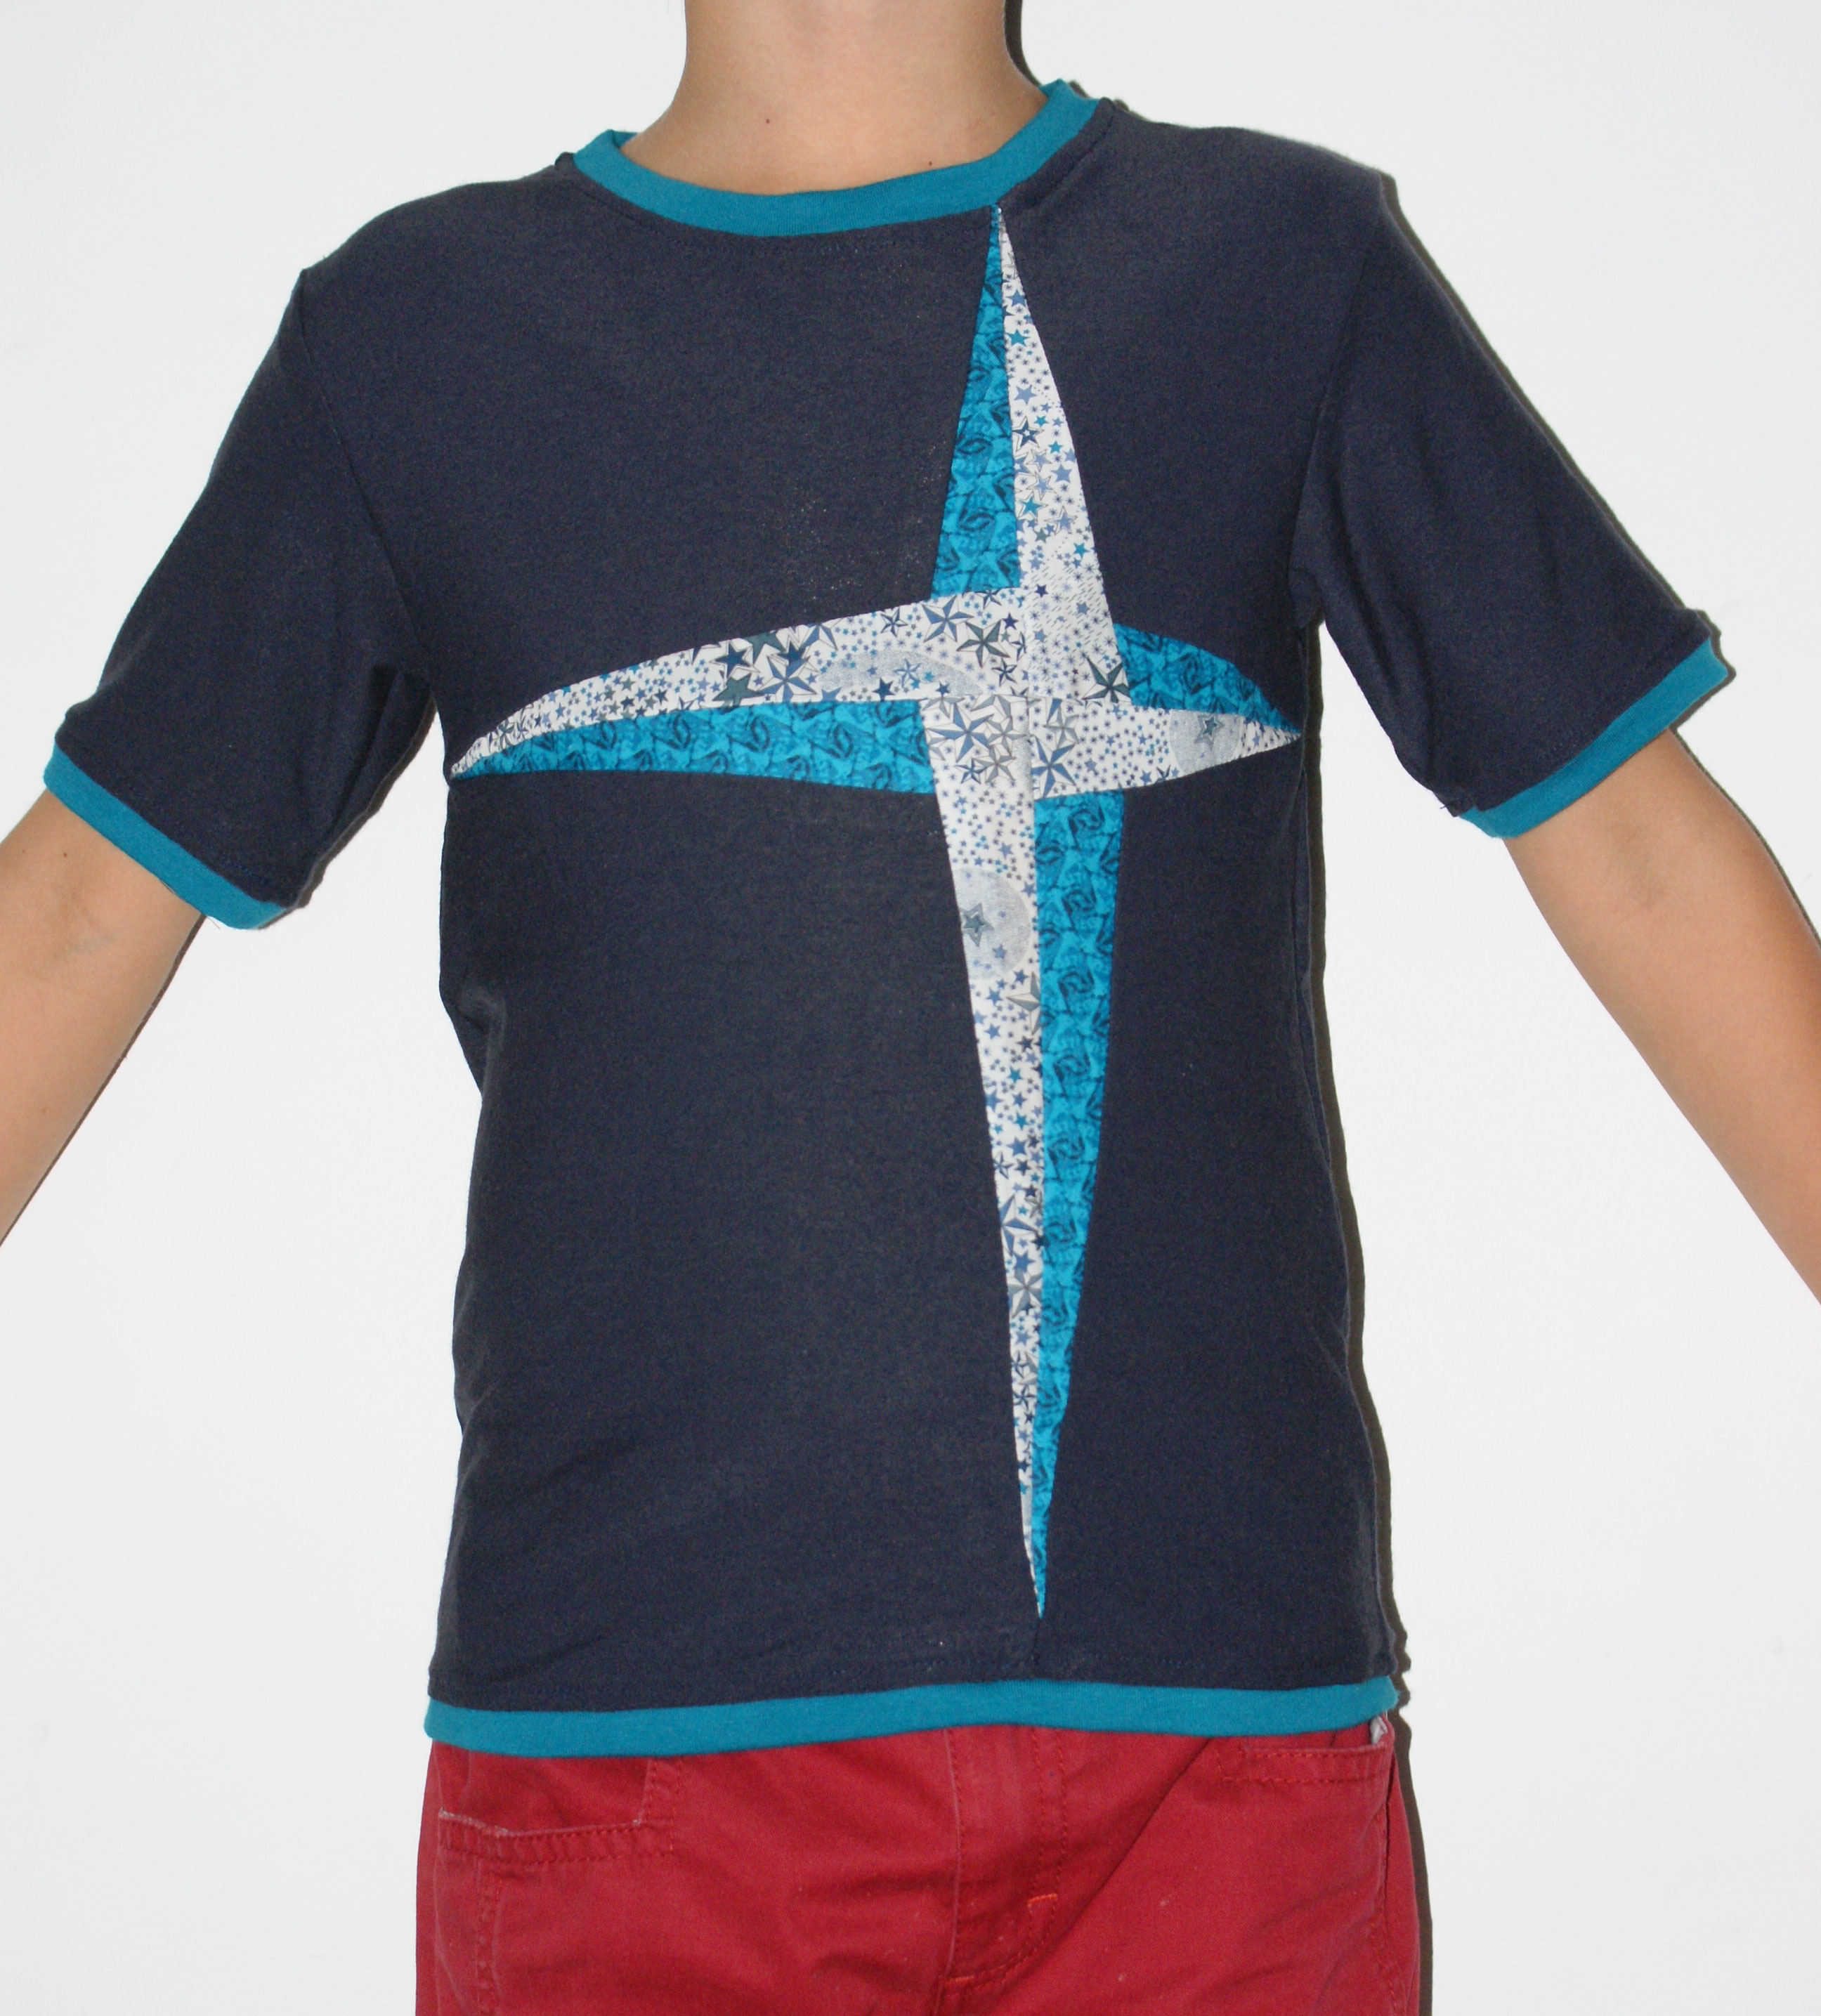 Tuto couture t-shirt